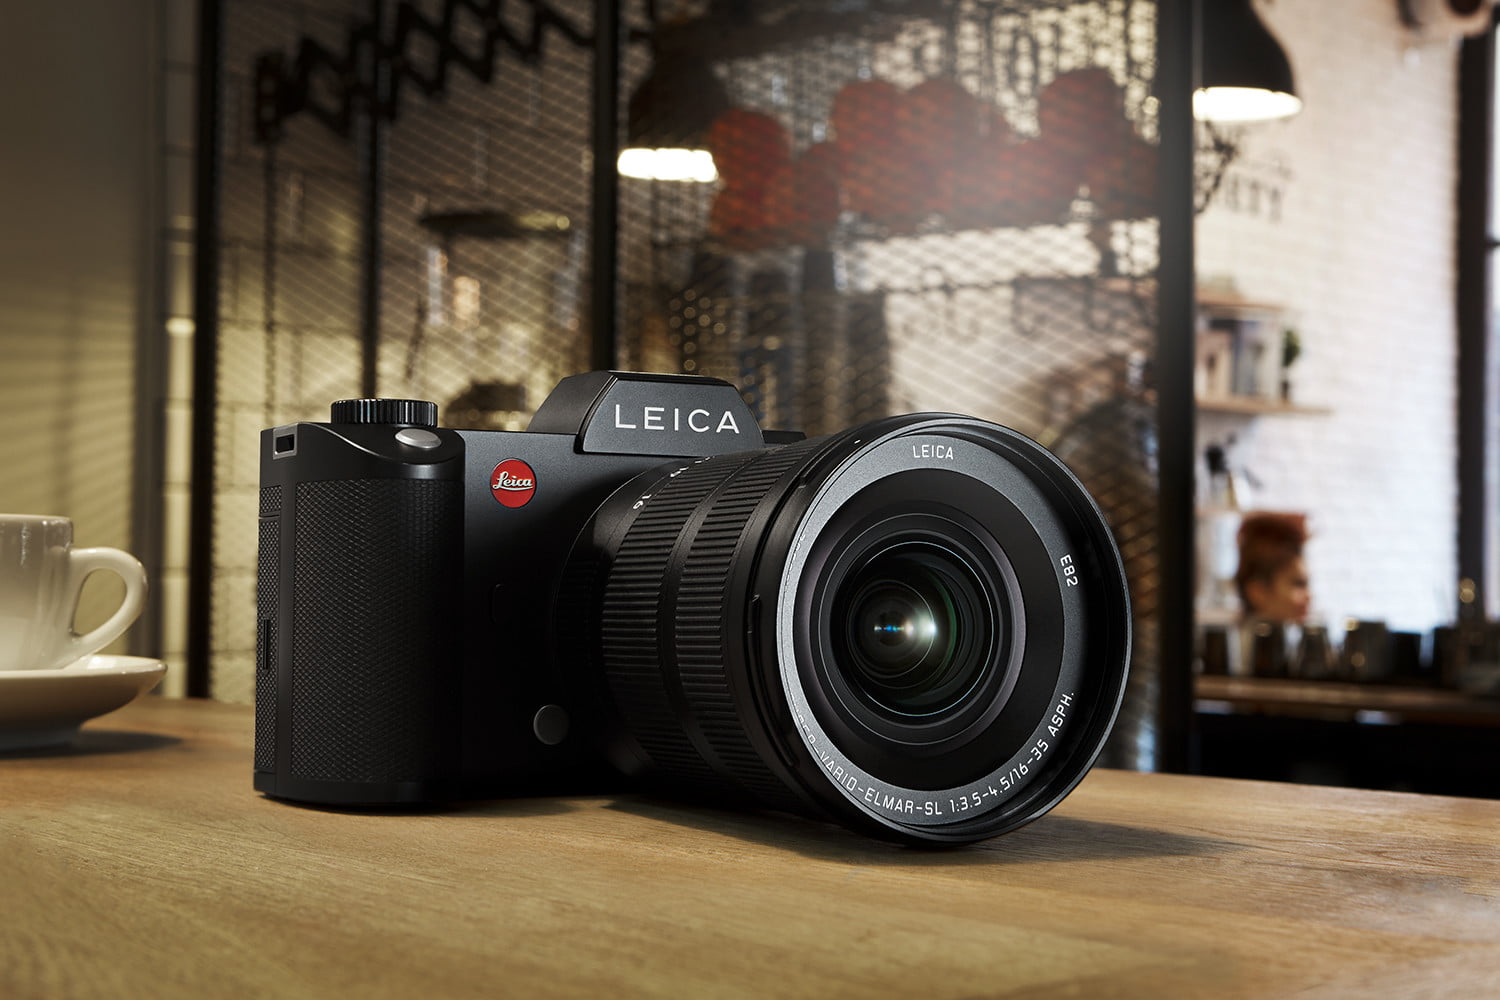 Leica Goes Wide With New 16 35mm For The Sl Camera